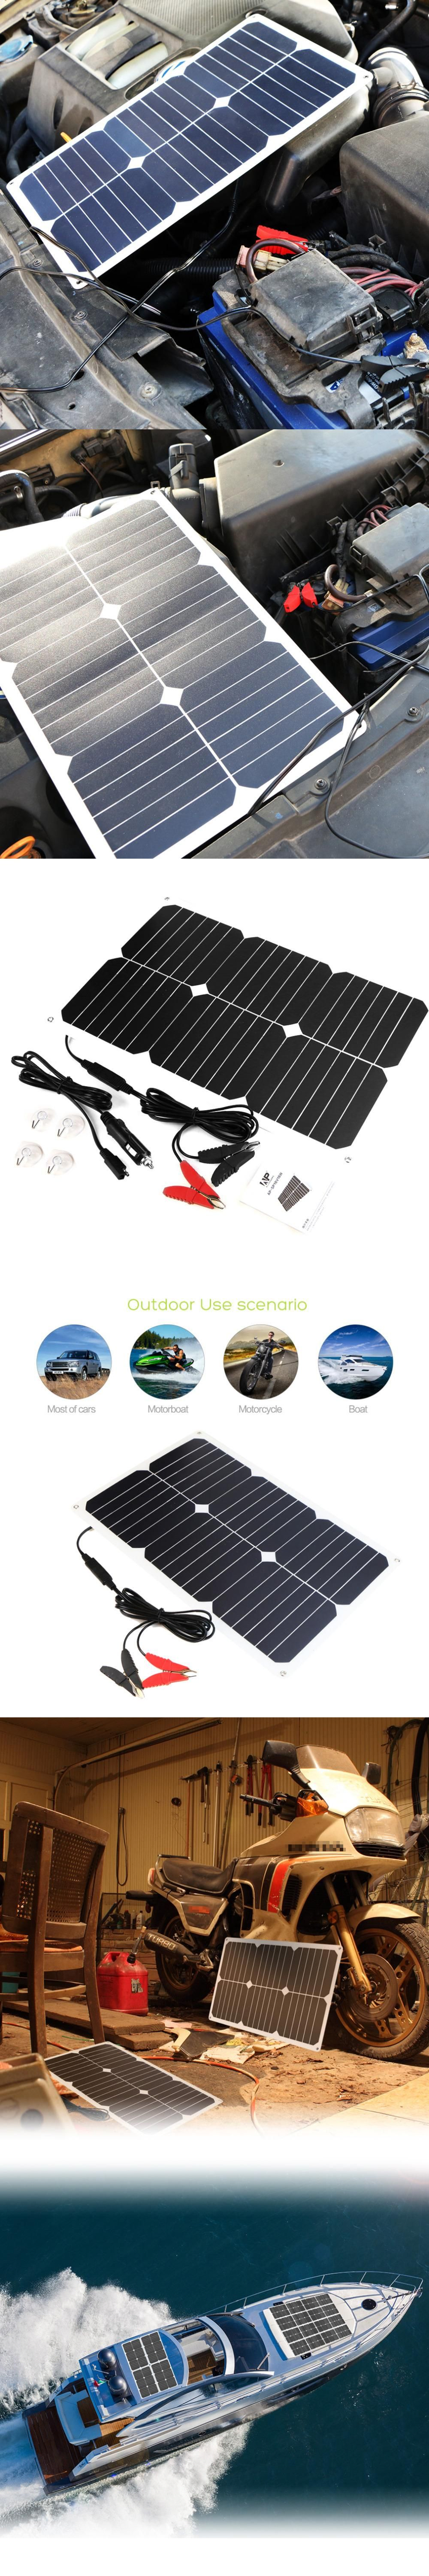 allpowers 18v18w sunpower solar panel charger usb ports waterproof